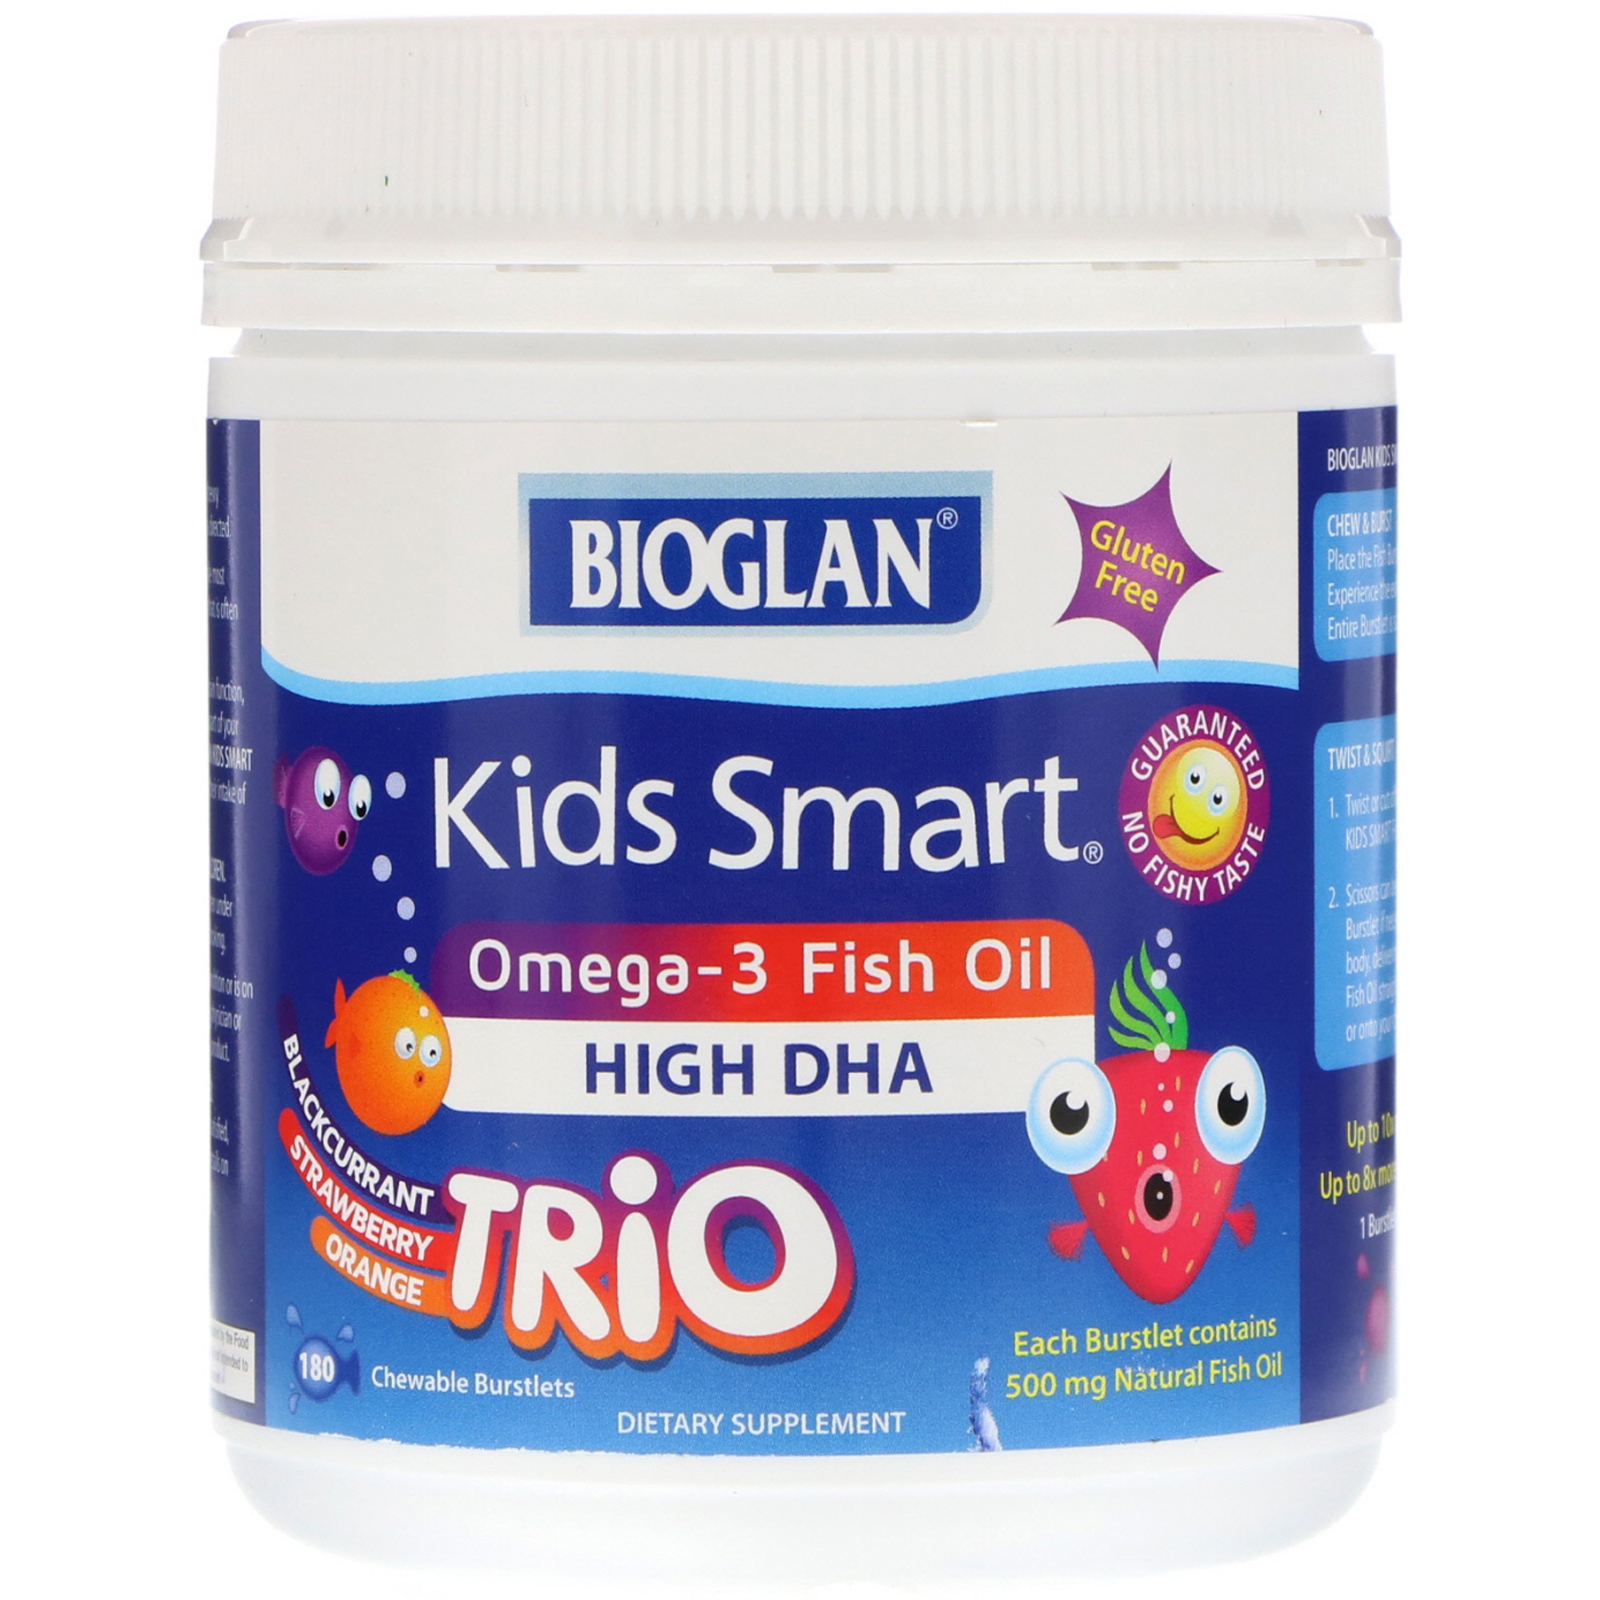 Bioglan  Kids Smart  Omega-3 Fish Oil  Trio Flavor  180 Chewable Burstlets